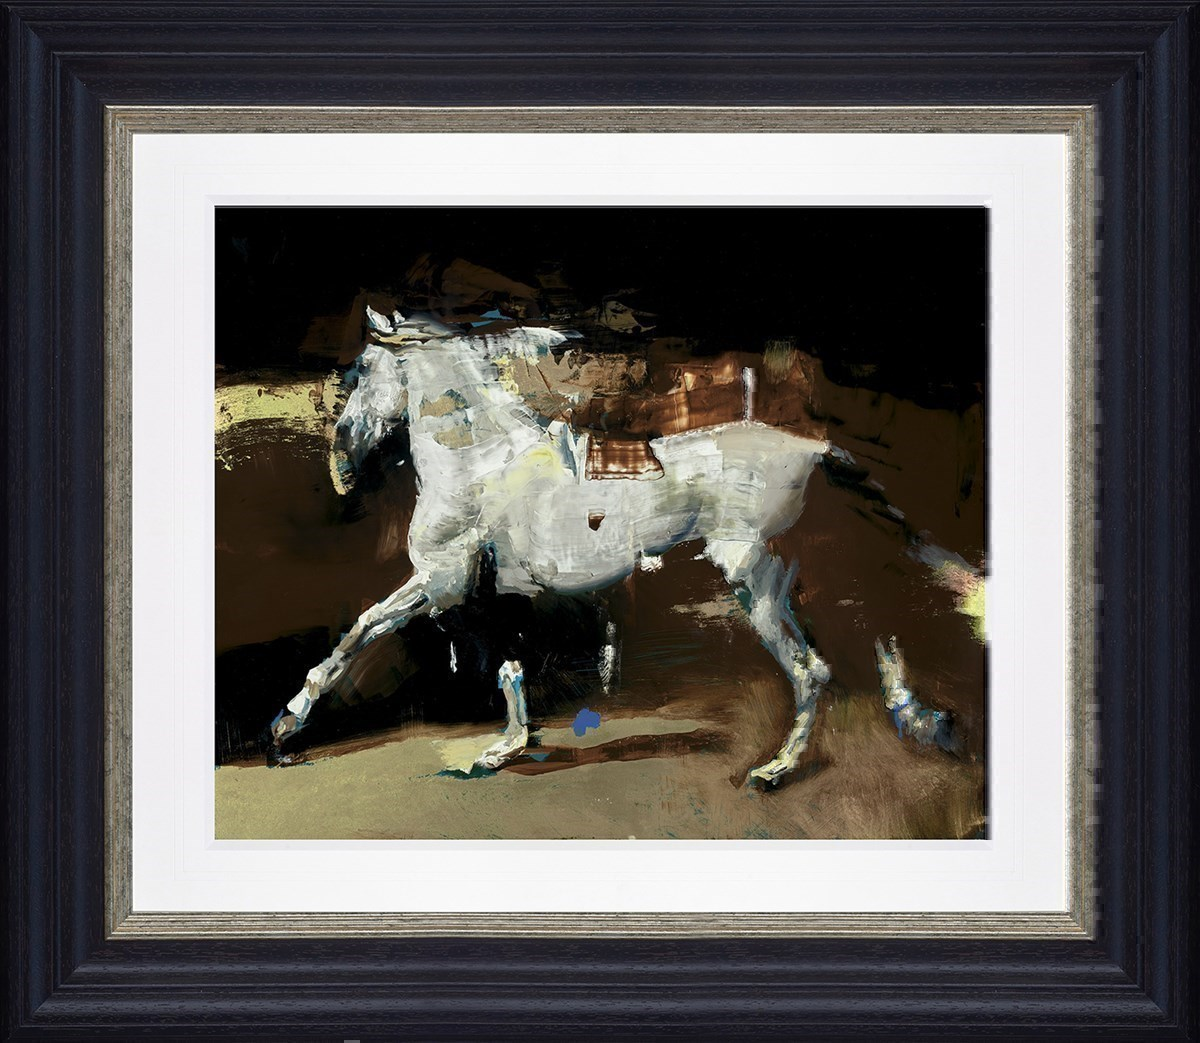 Arabian VI by Christian Hook - Paper Edition sized 17x14 inches. Available from Whitewall Galleries